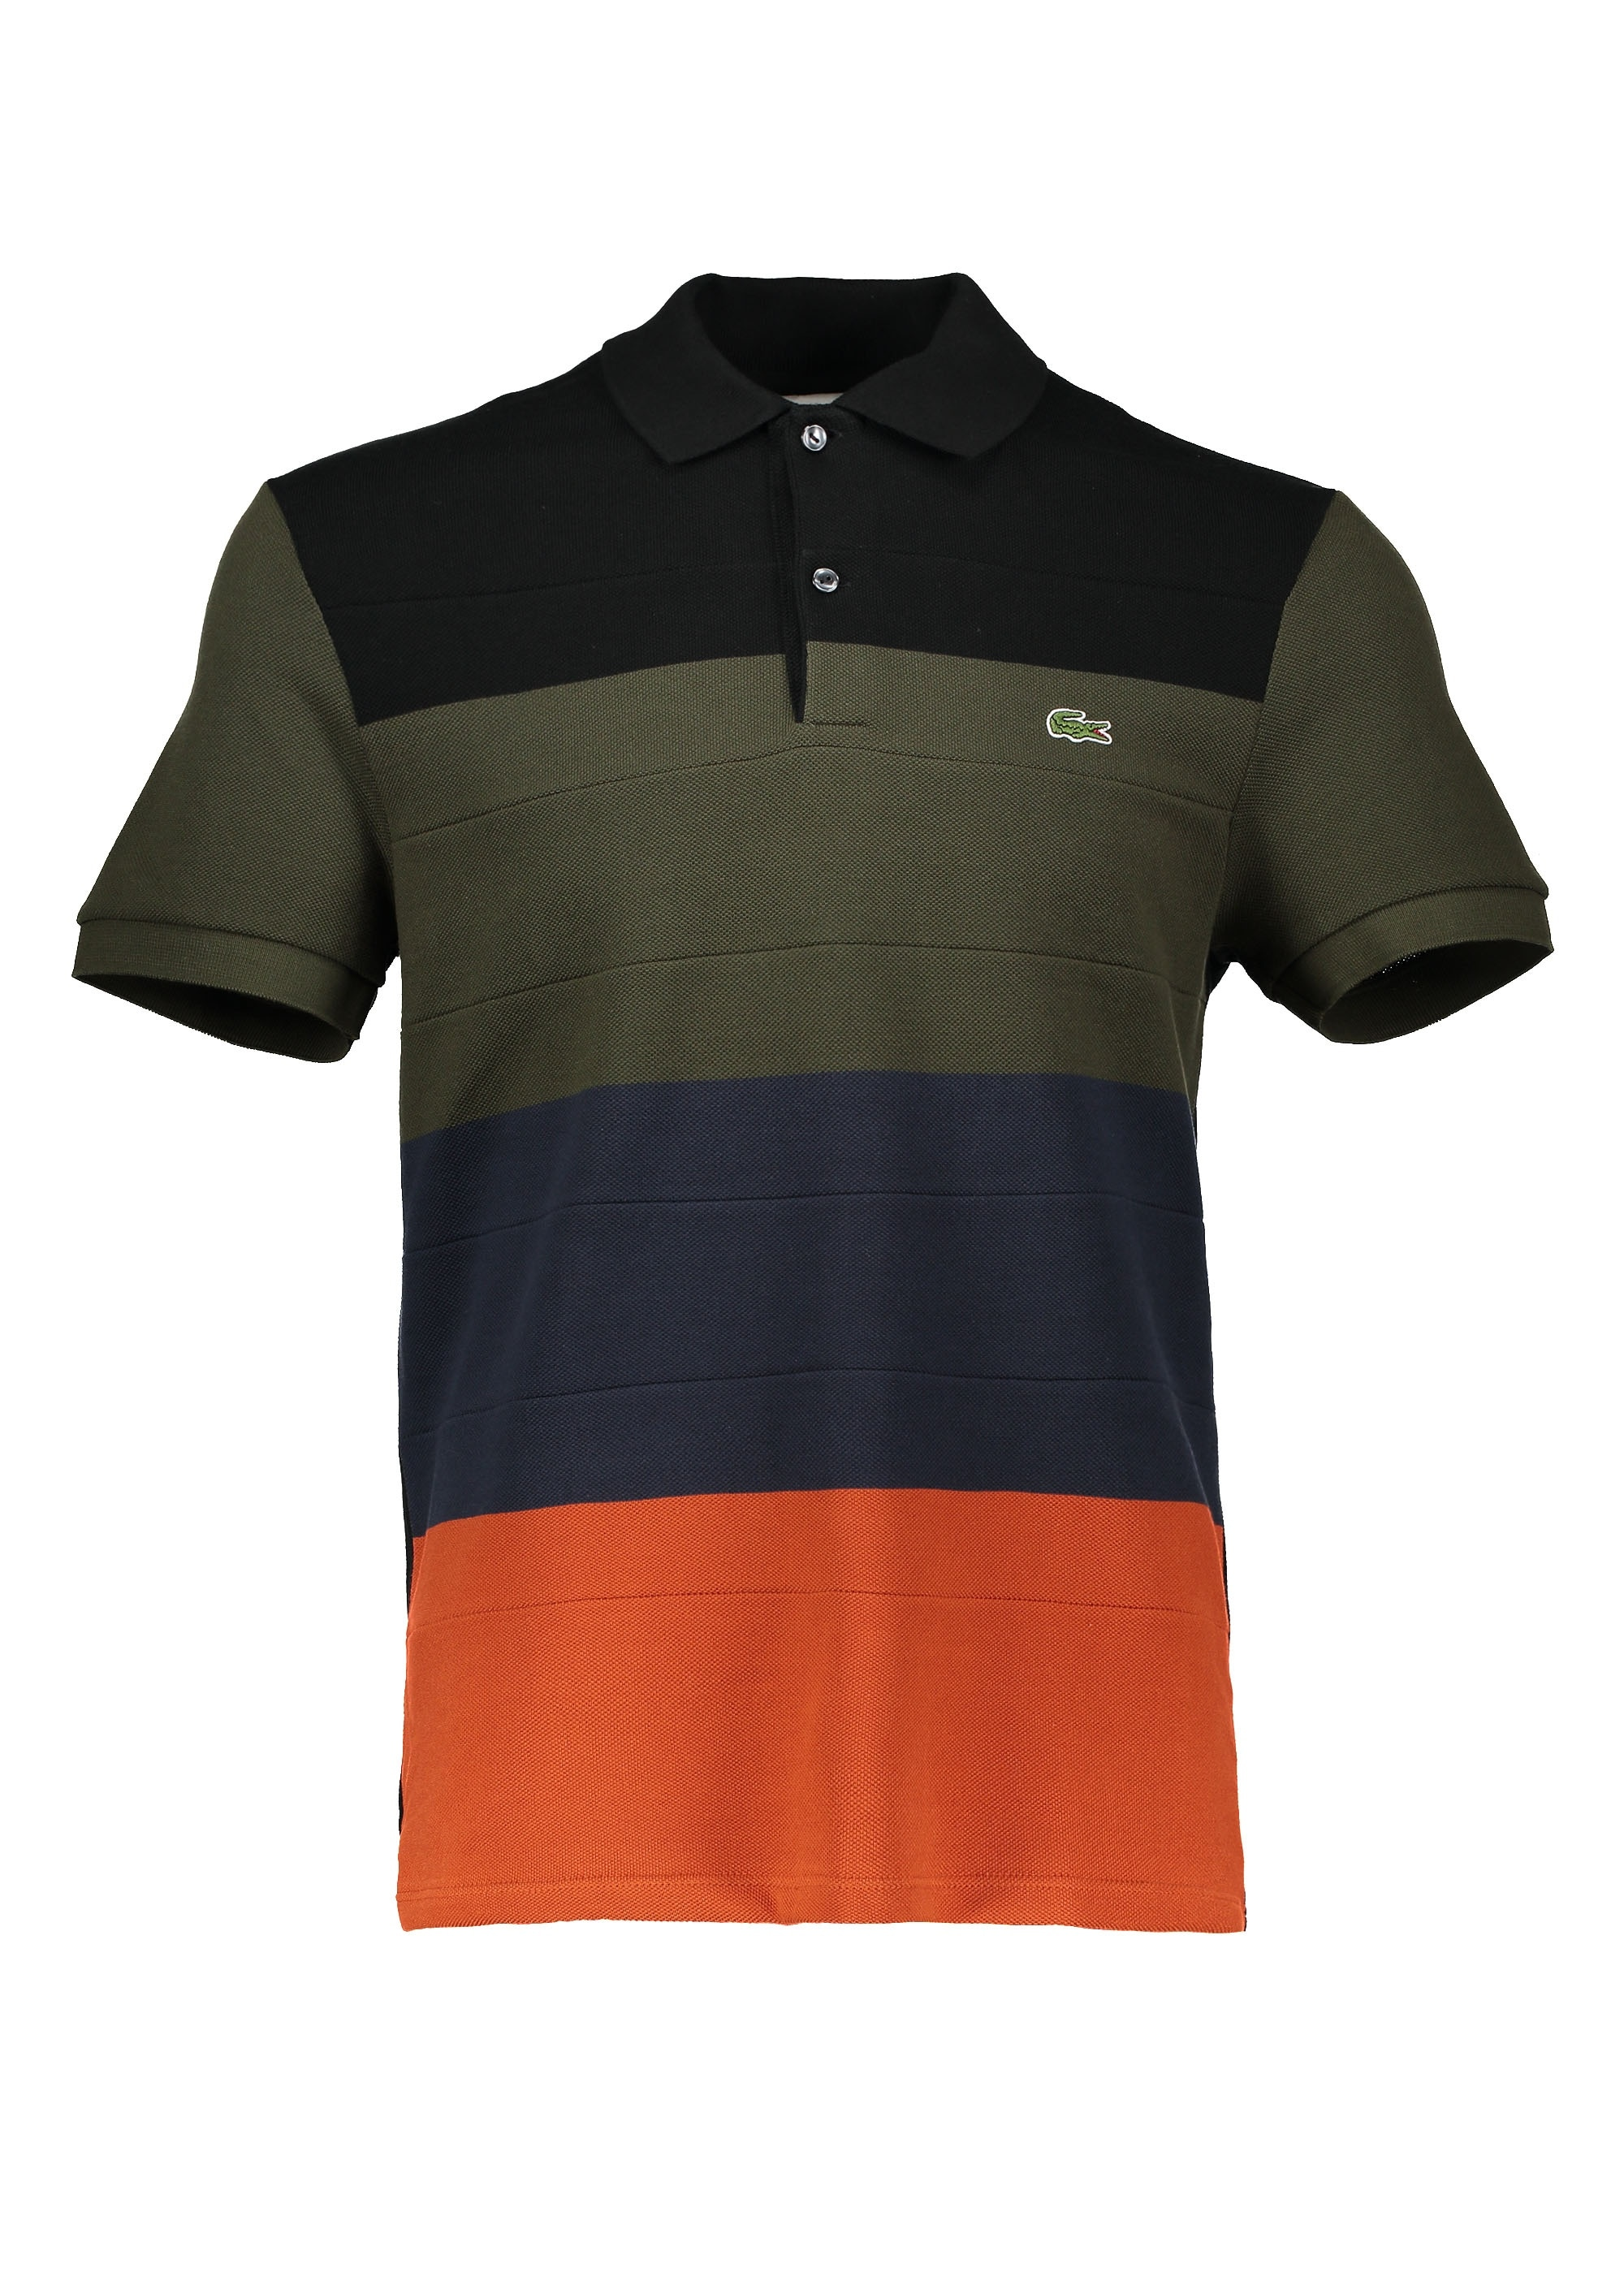 246ee3b4ff Lacoste Stripe Polo Shirt - Multi - Polo Shirts from Triads UK